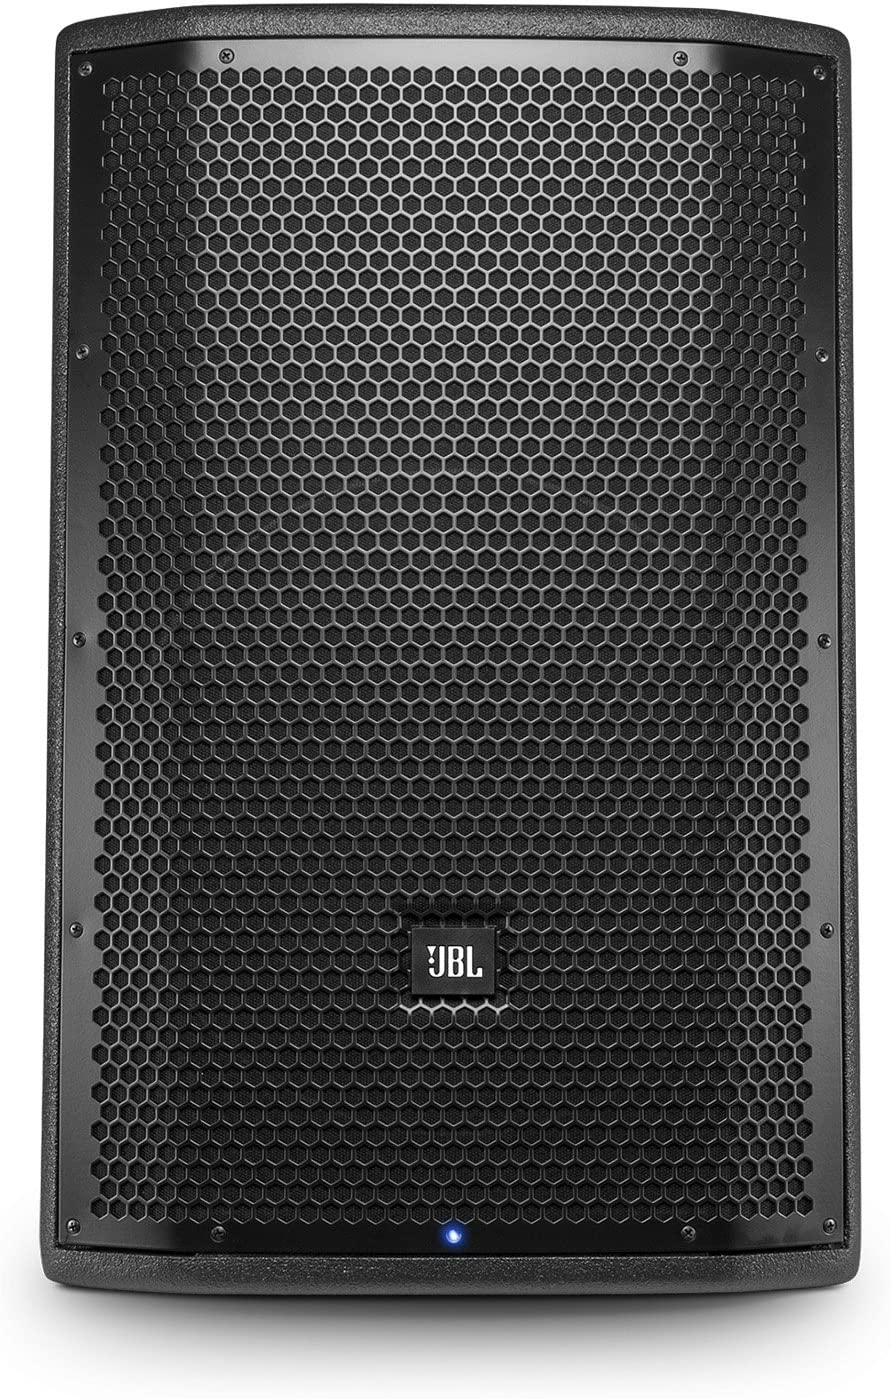 JBL Professional PRX812W Portable 2-Way Self Powered Full Range Main System/Floor Monitor with WiFi, 15-Inch